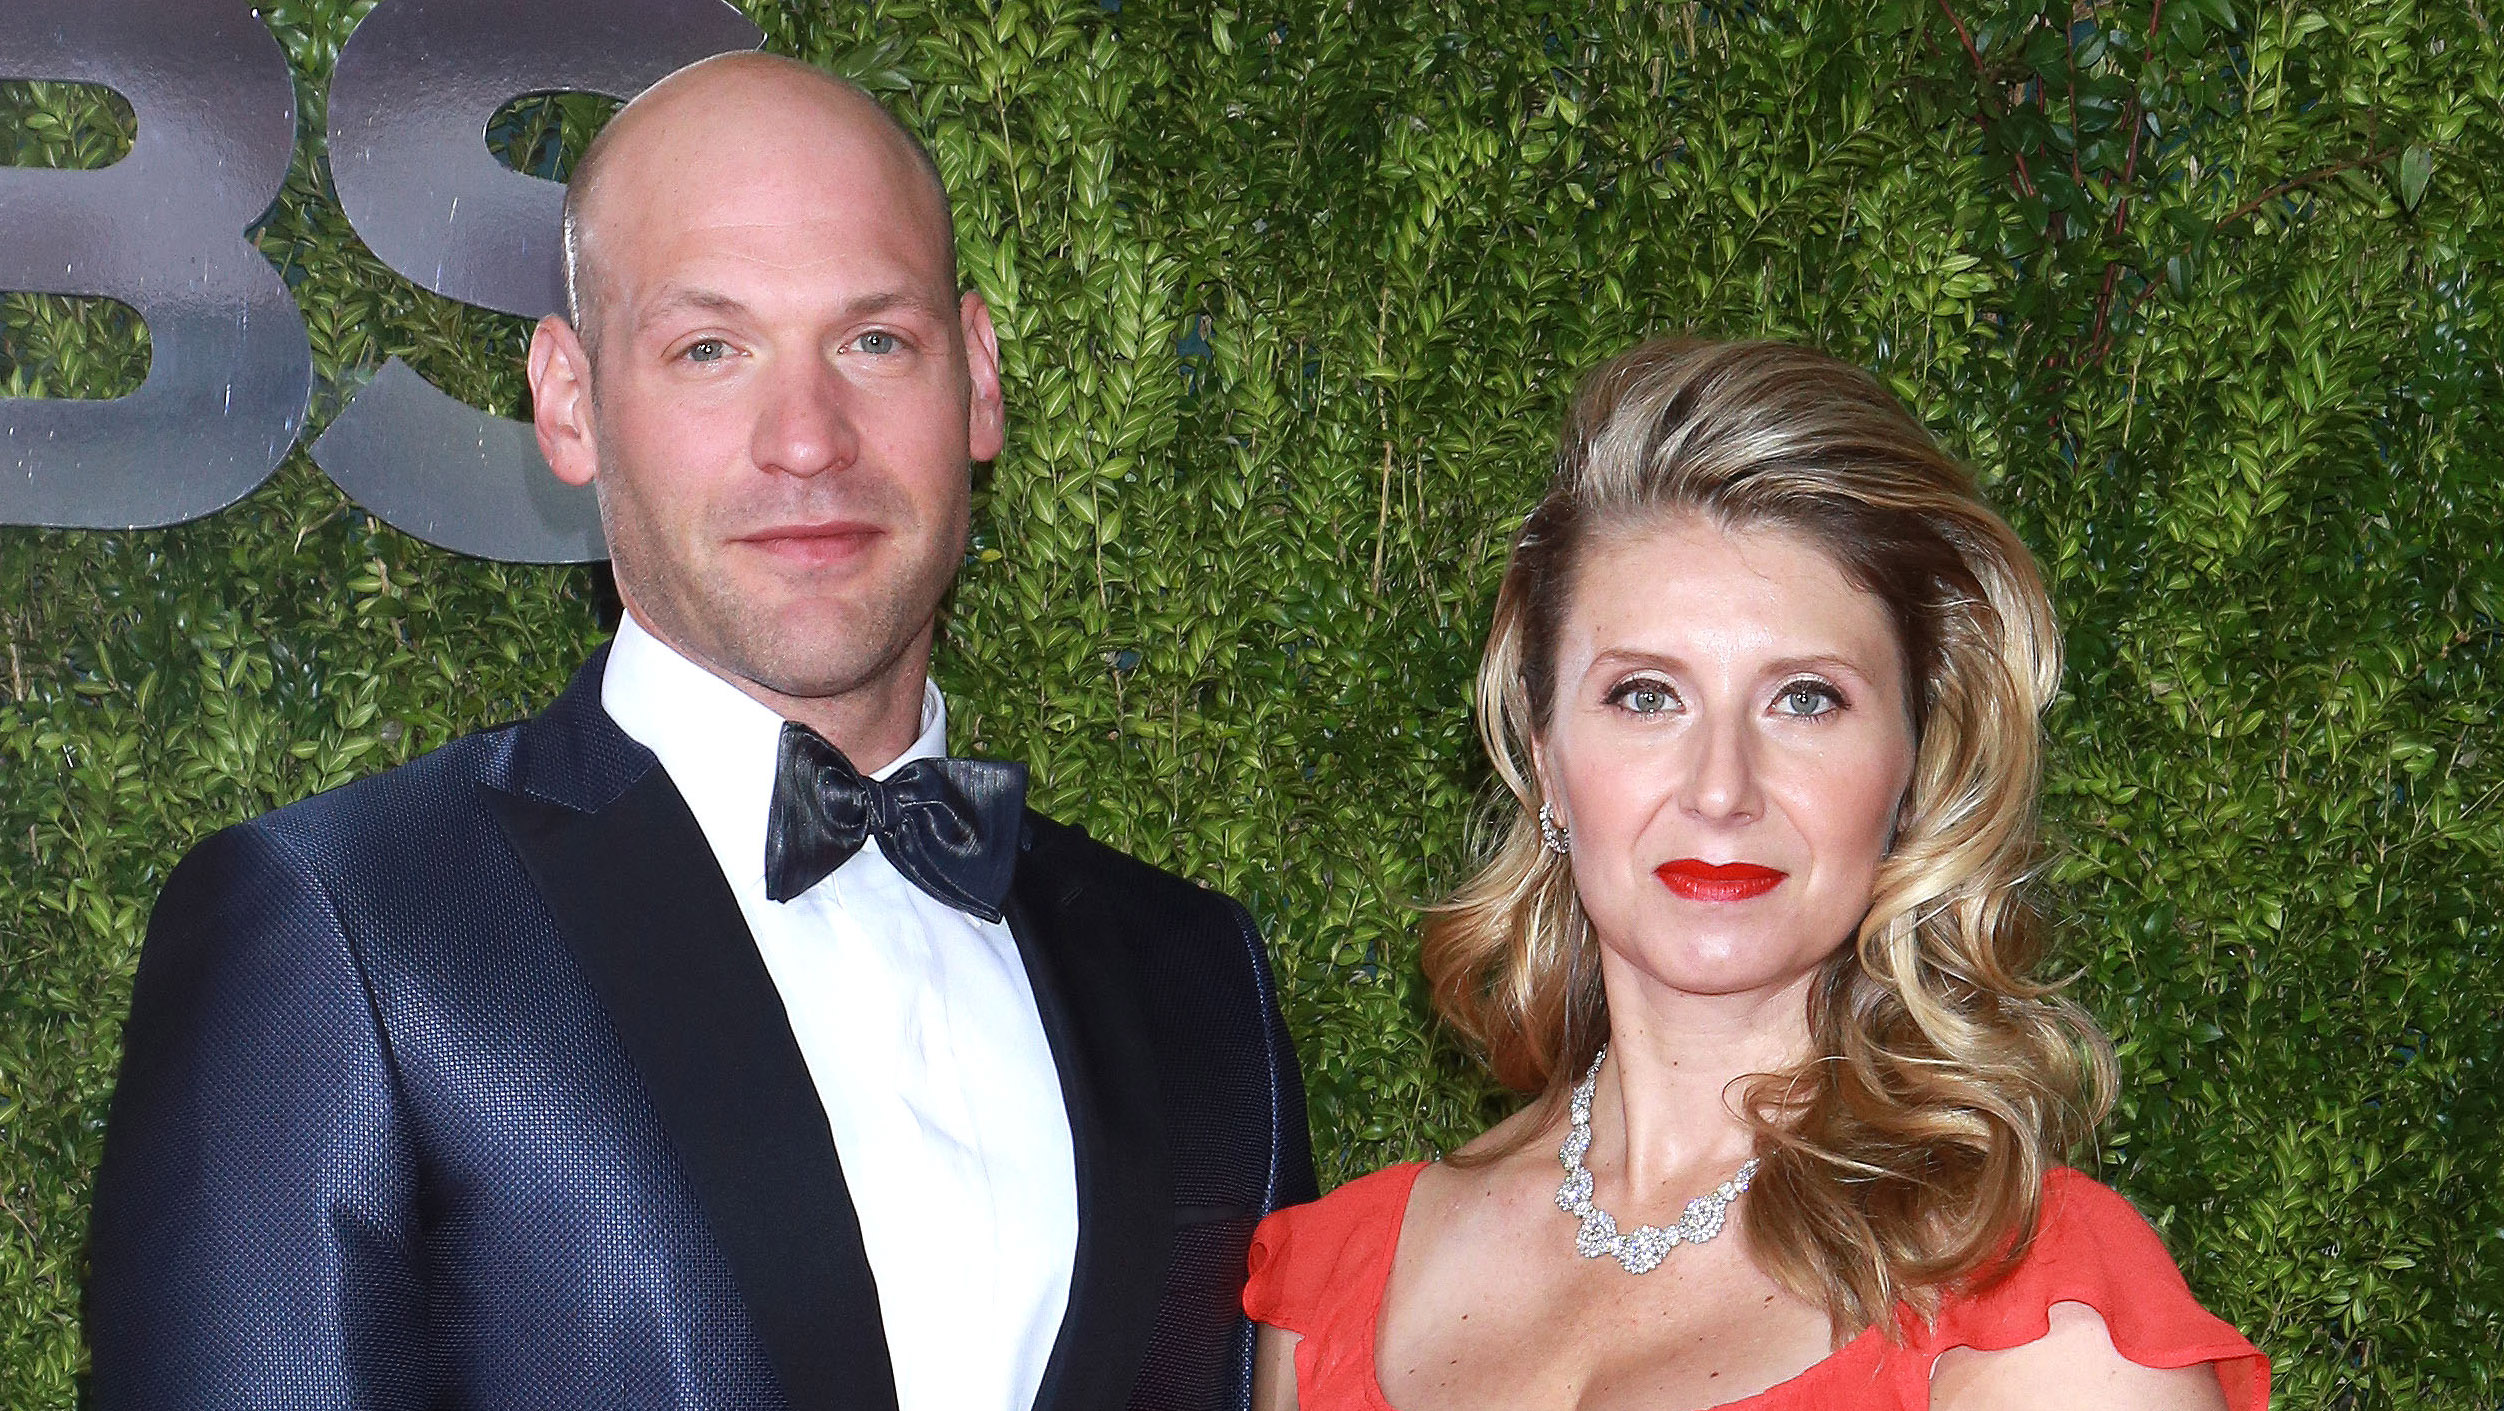 Corey Stoll Amp Nadia Bowers Get Married Amp Expecting First